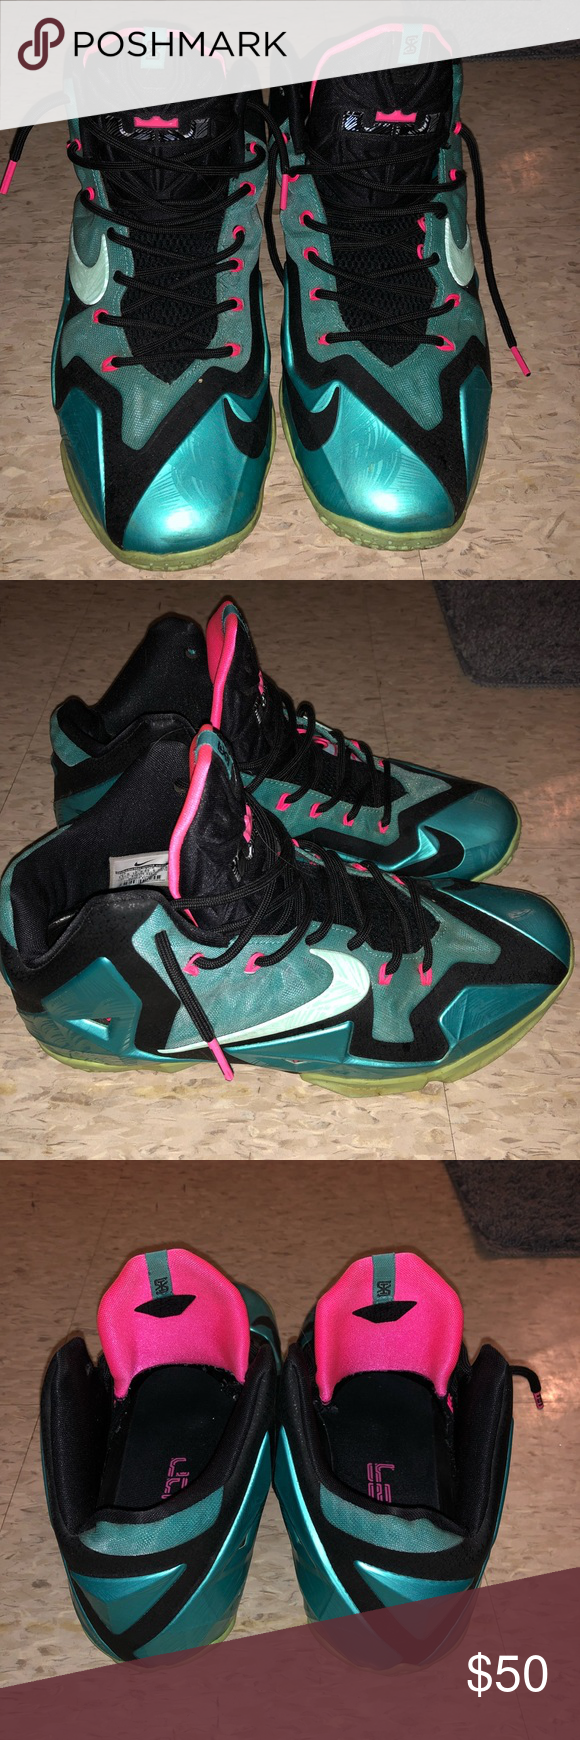 6170784408c7a LeBron 11 South Beach LeBron 11 South Beach Used for ball, just like ...